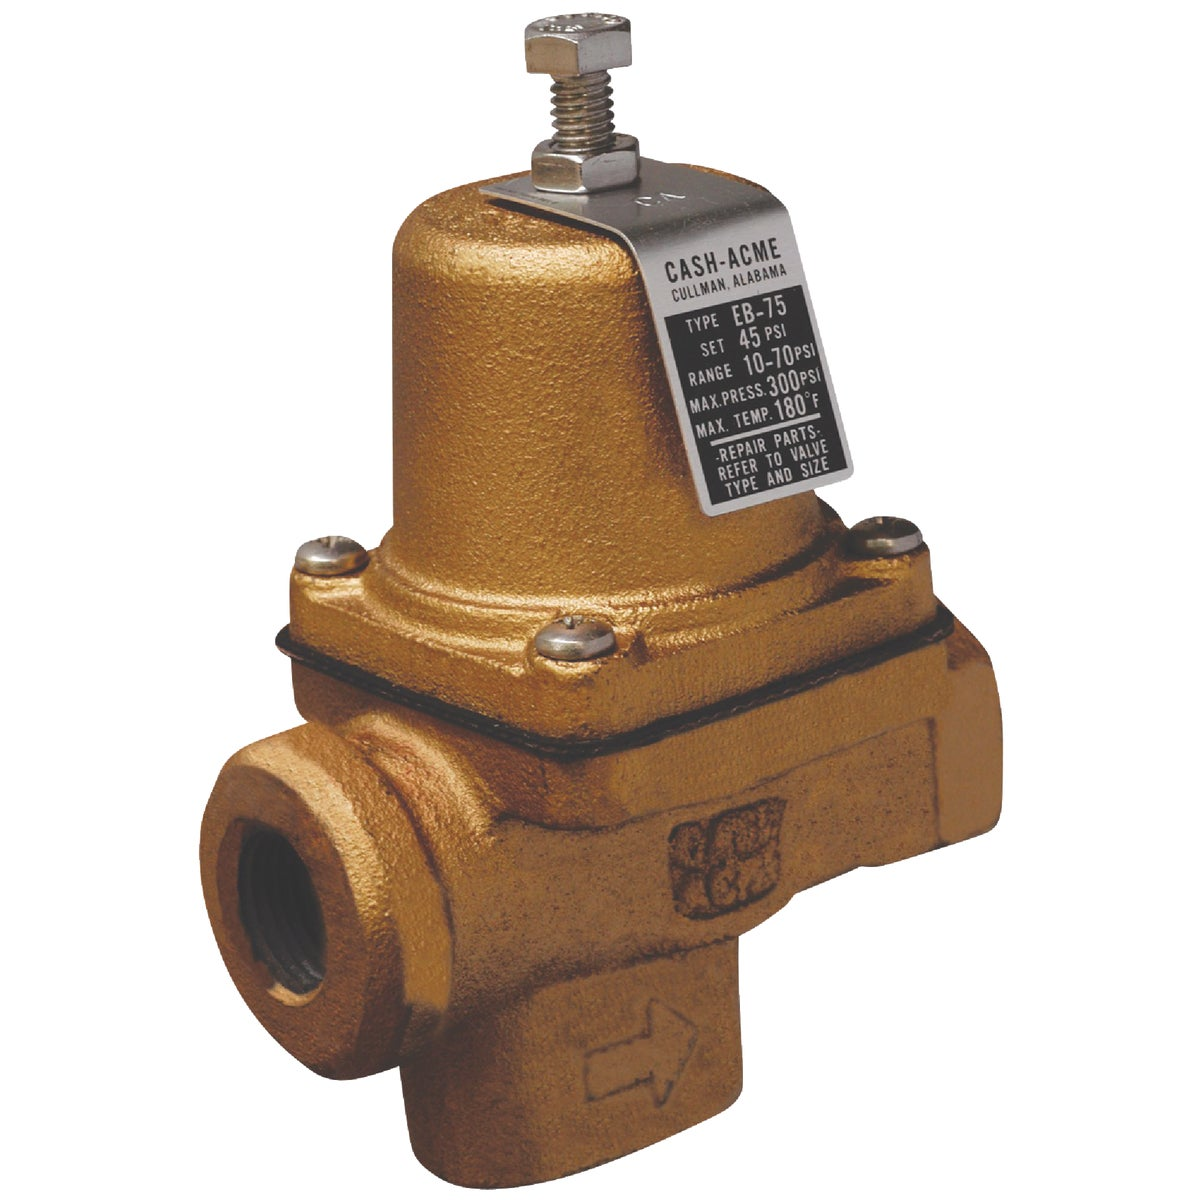 1/2 PRESSURE REDUC VALVE - 22999-0045 by Cash Acme